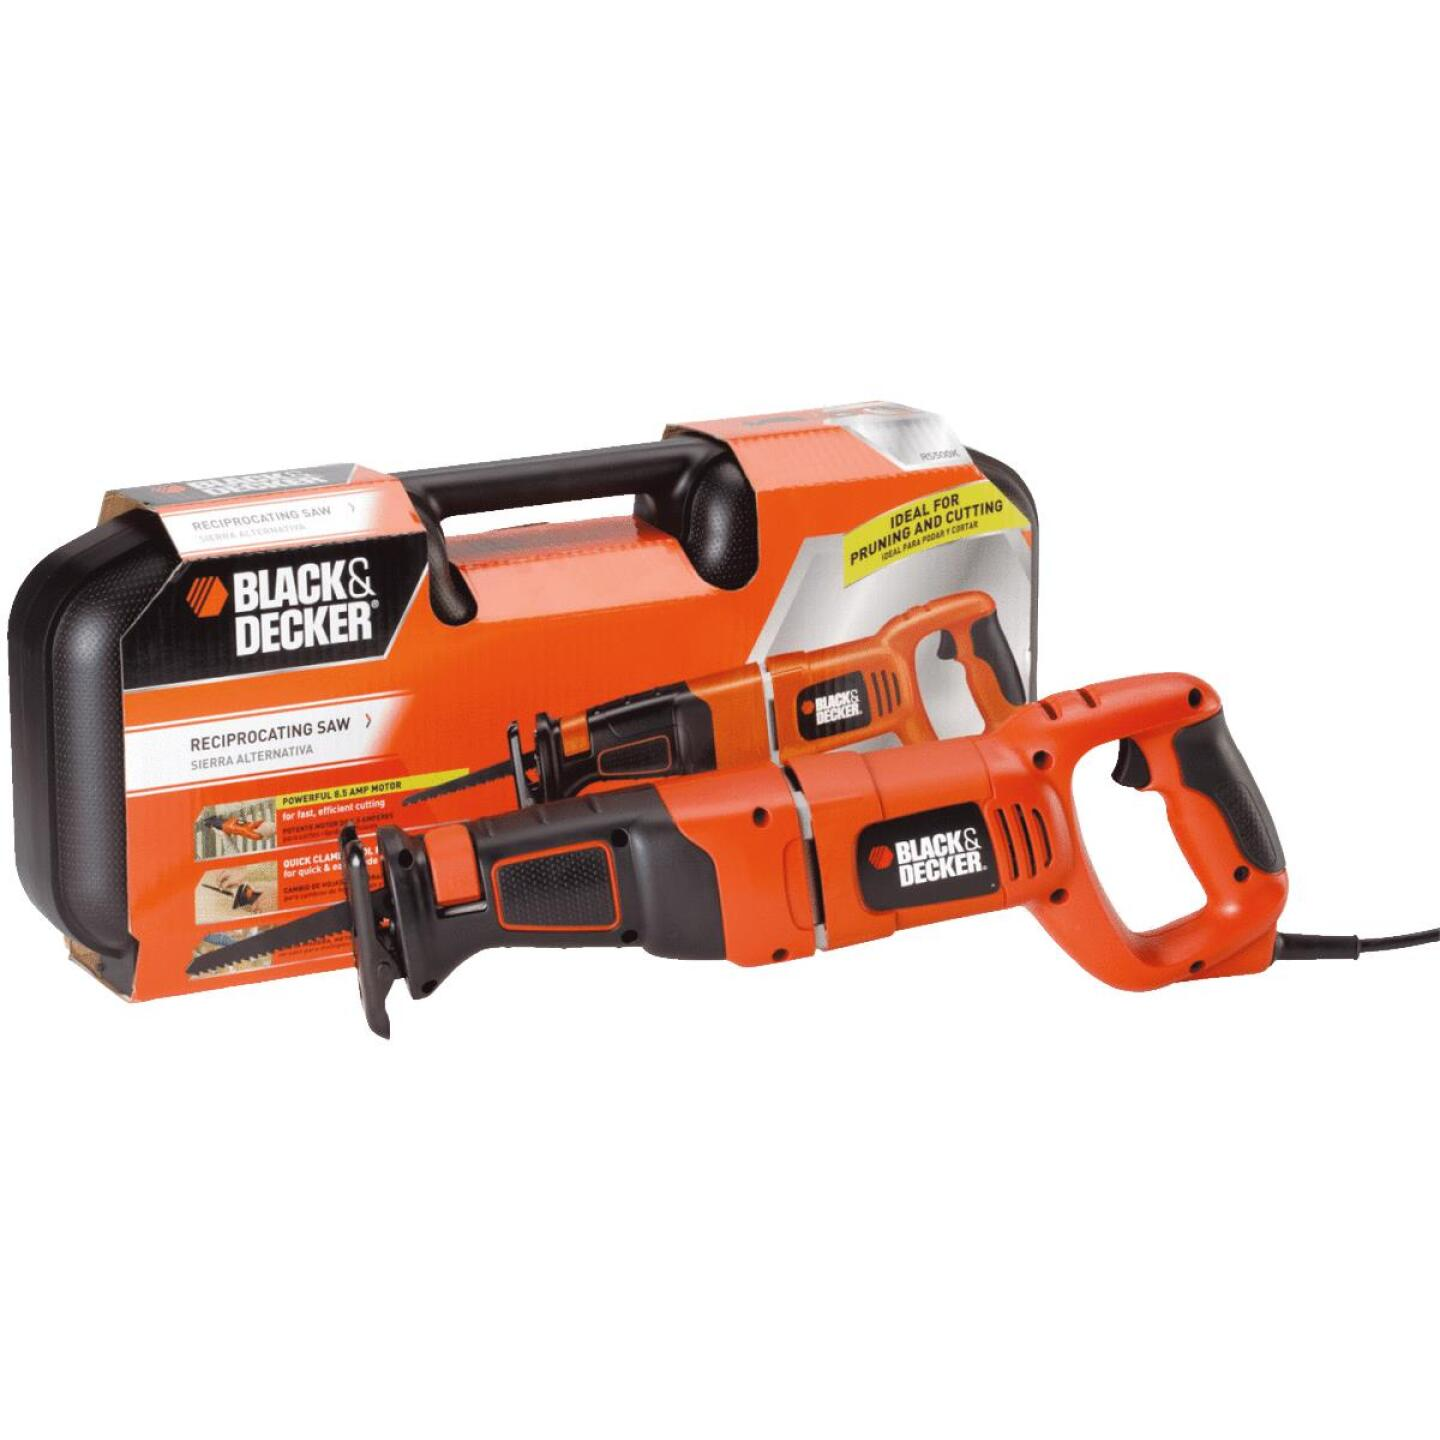 Black & Decker 8.5-Amp Reciprocating Saw Kit Image 7